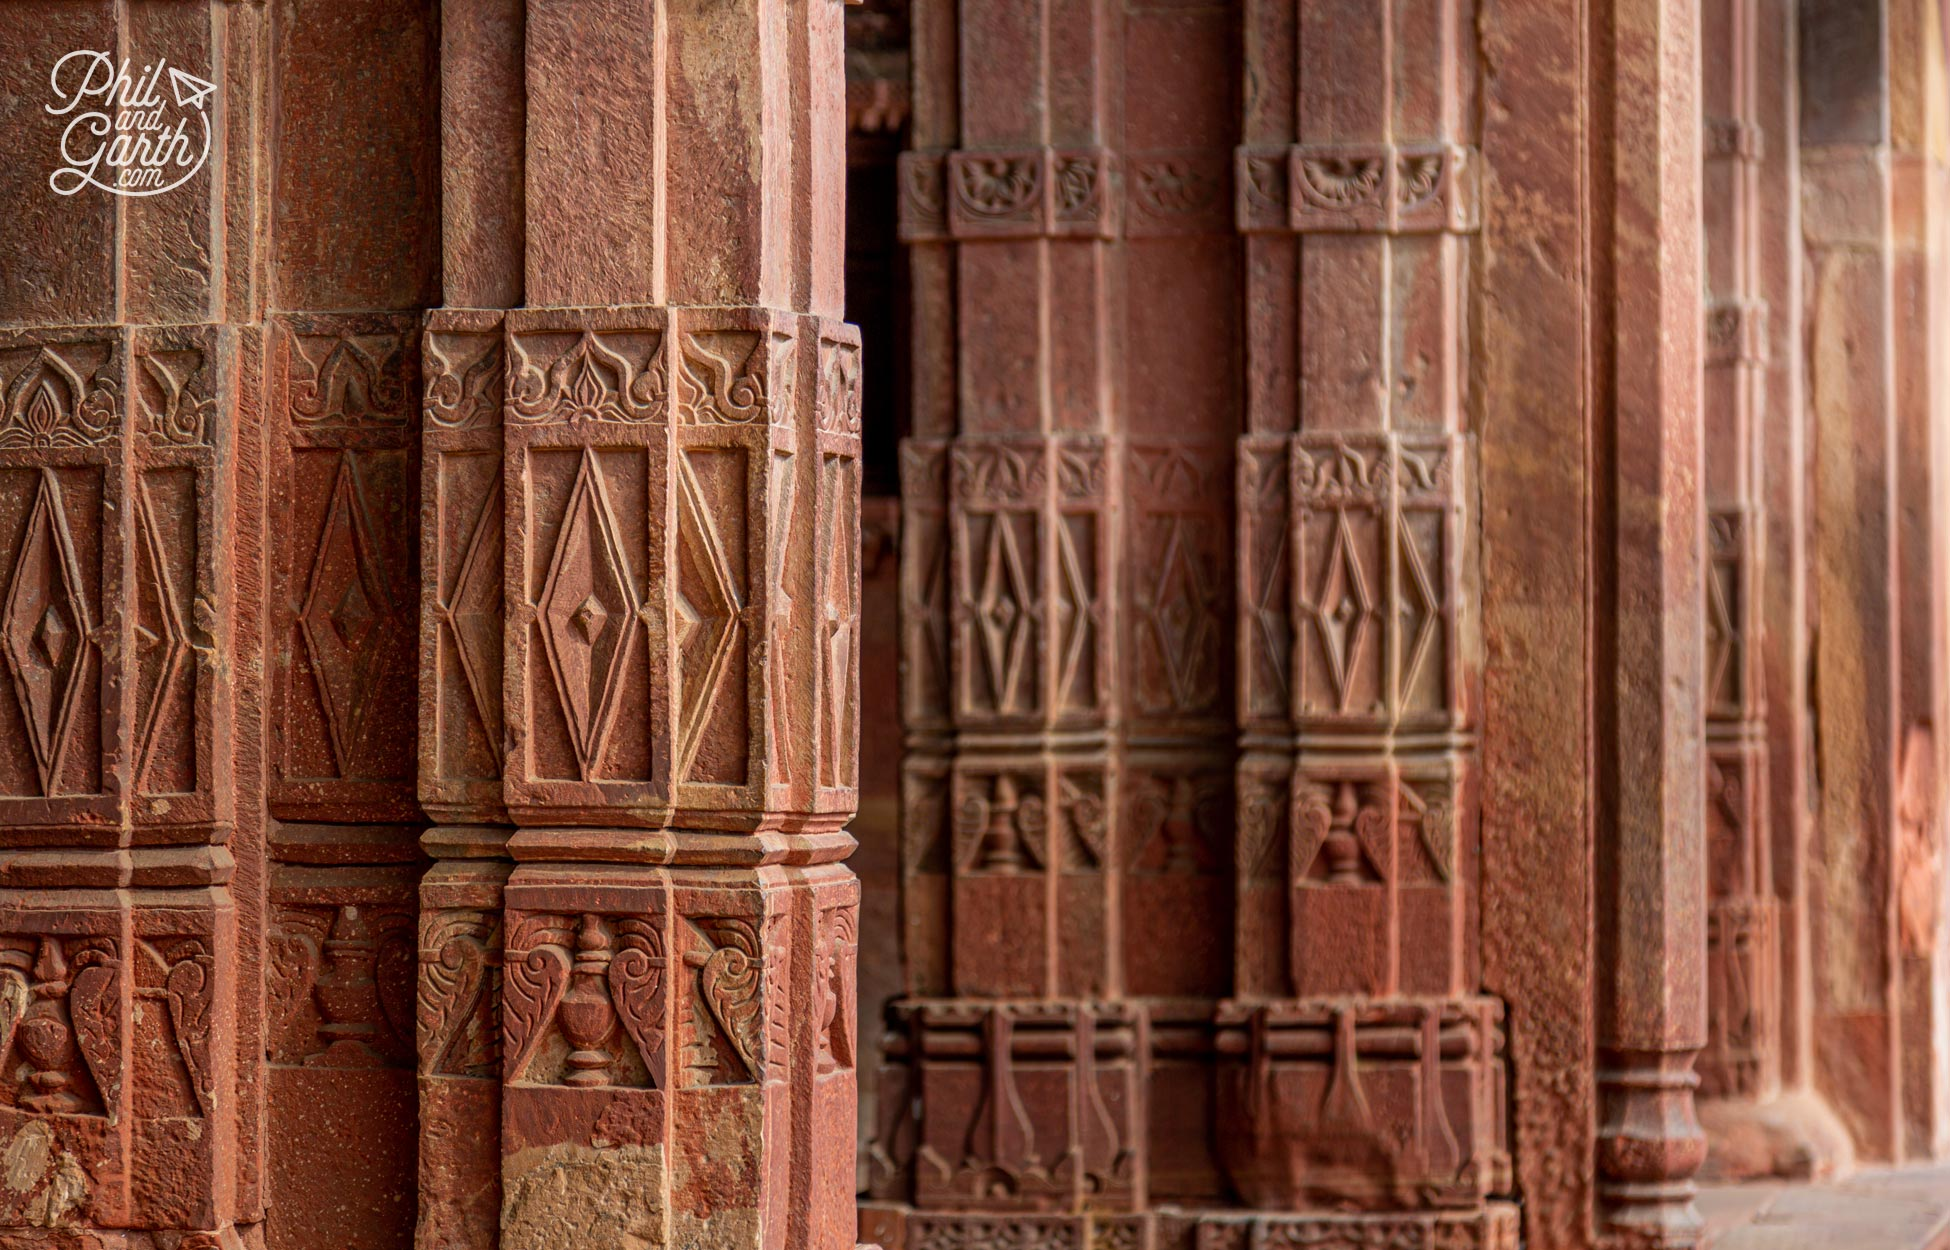 Detail of some of the bas-relief columns